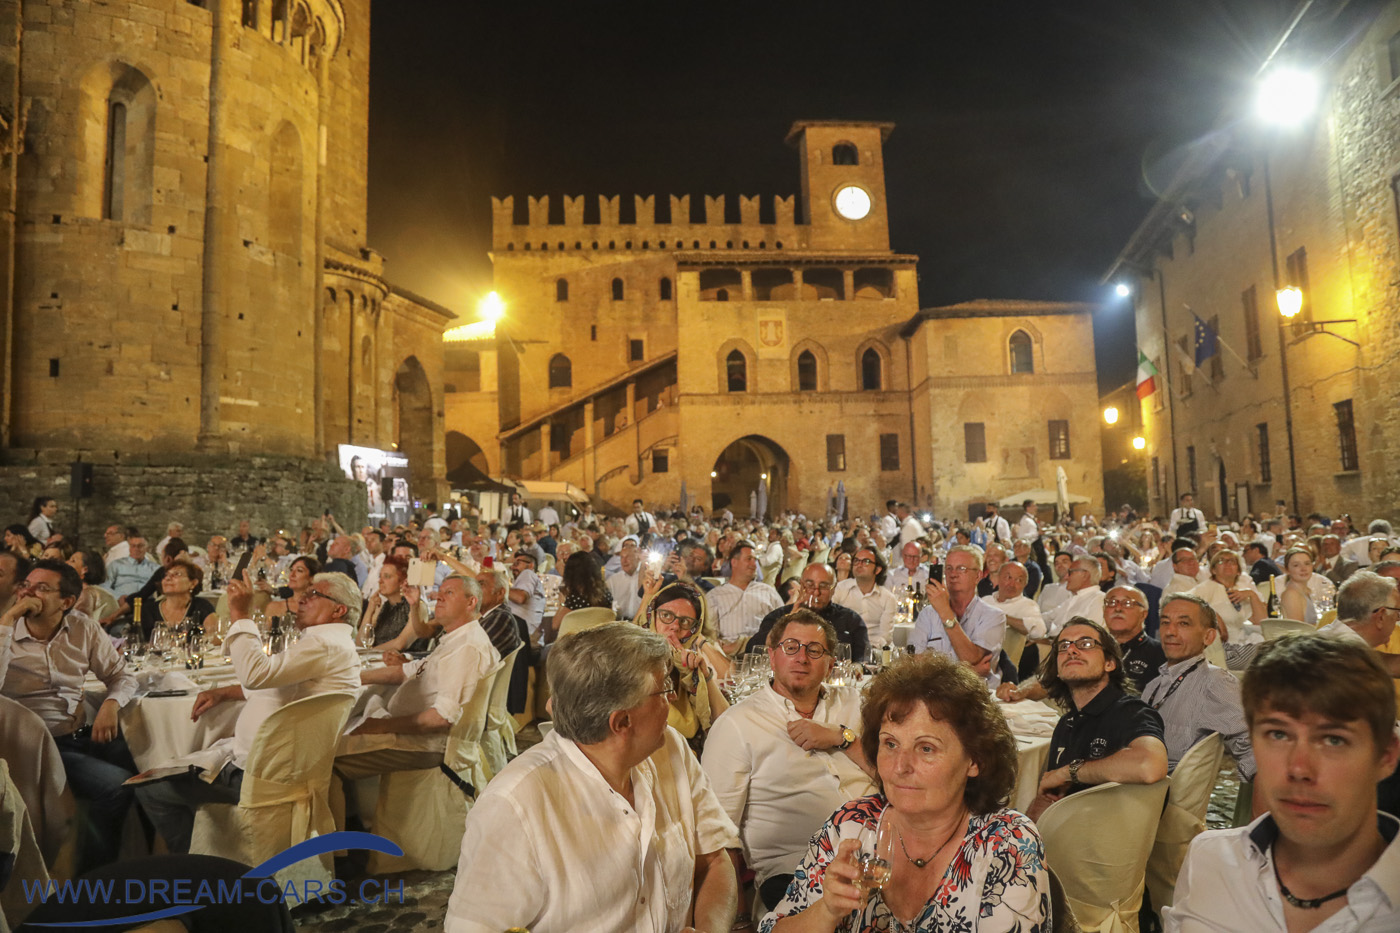 Gala-Diner am Samstagabend in Castell' Arquato